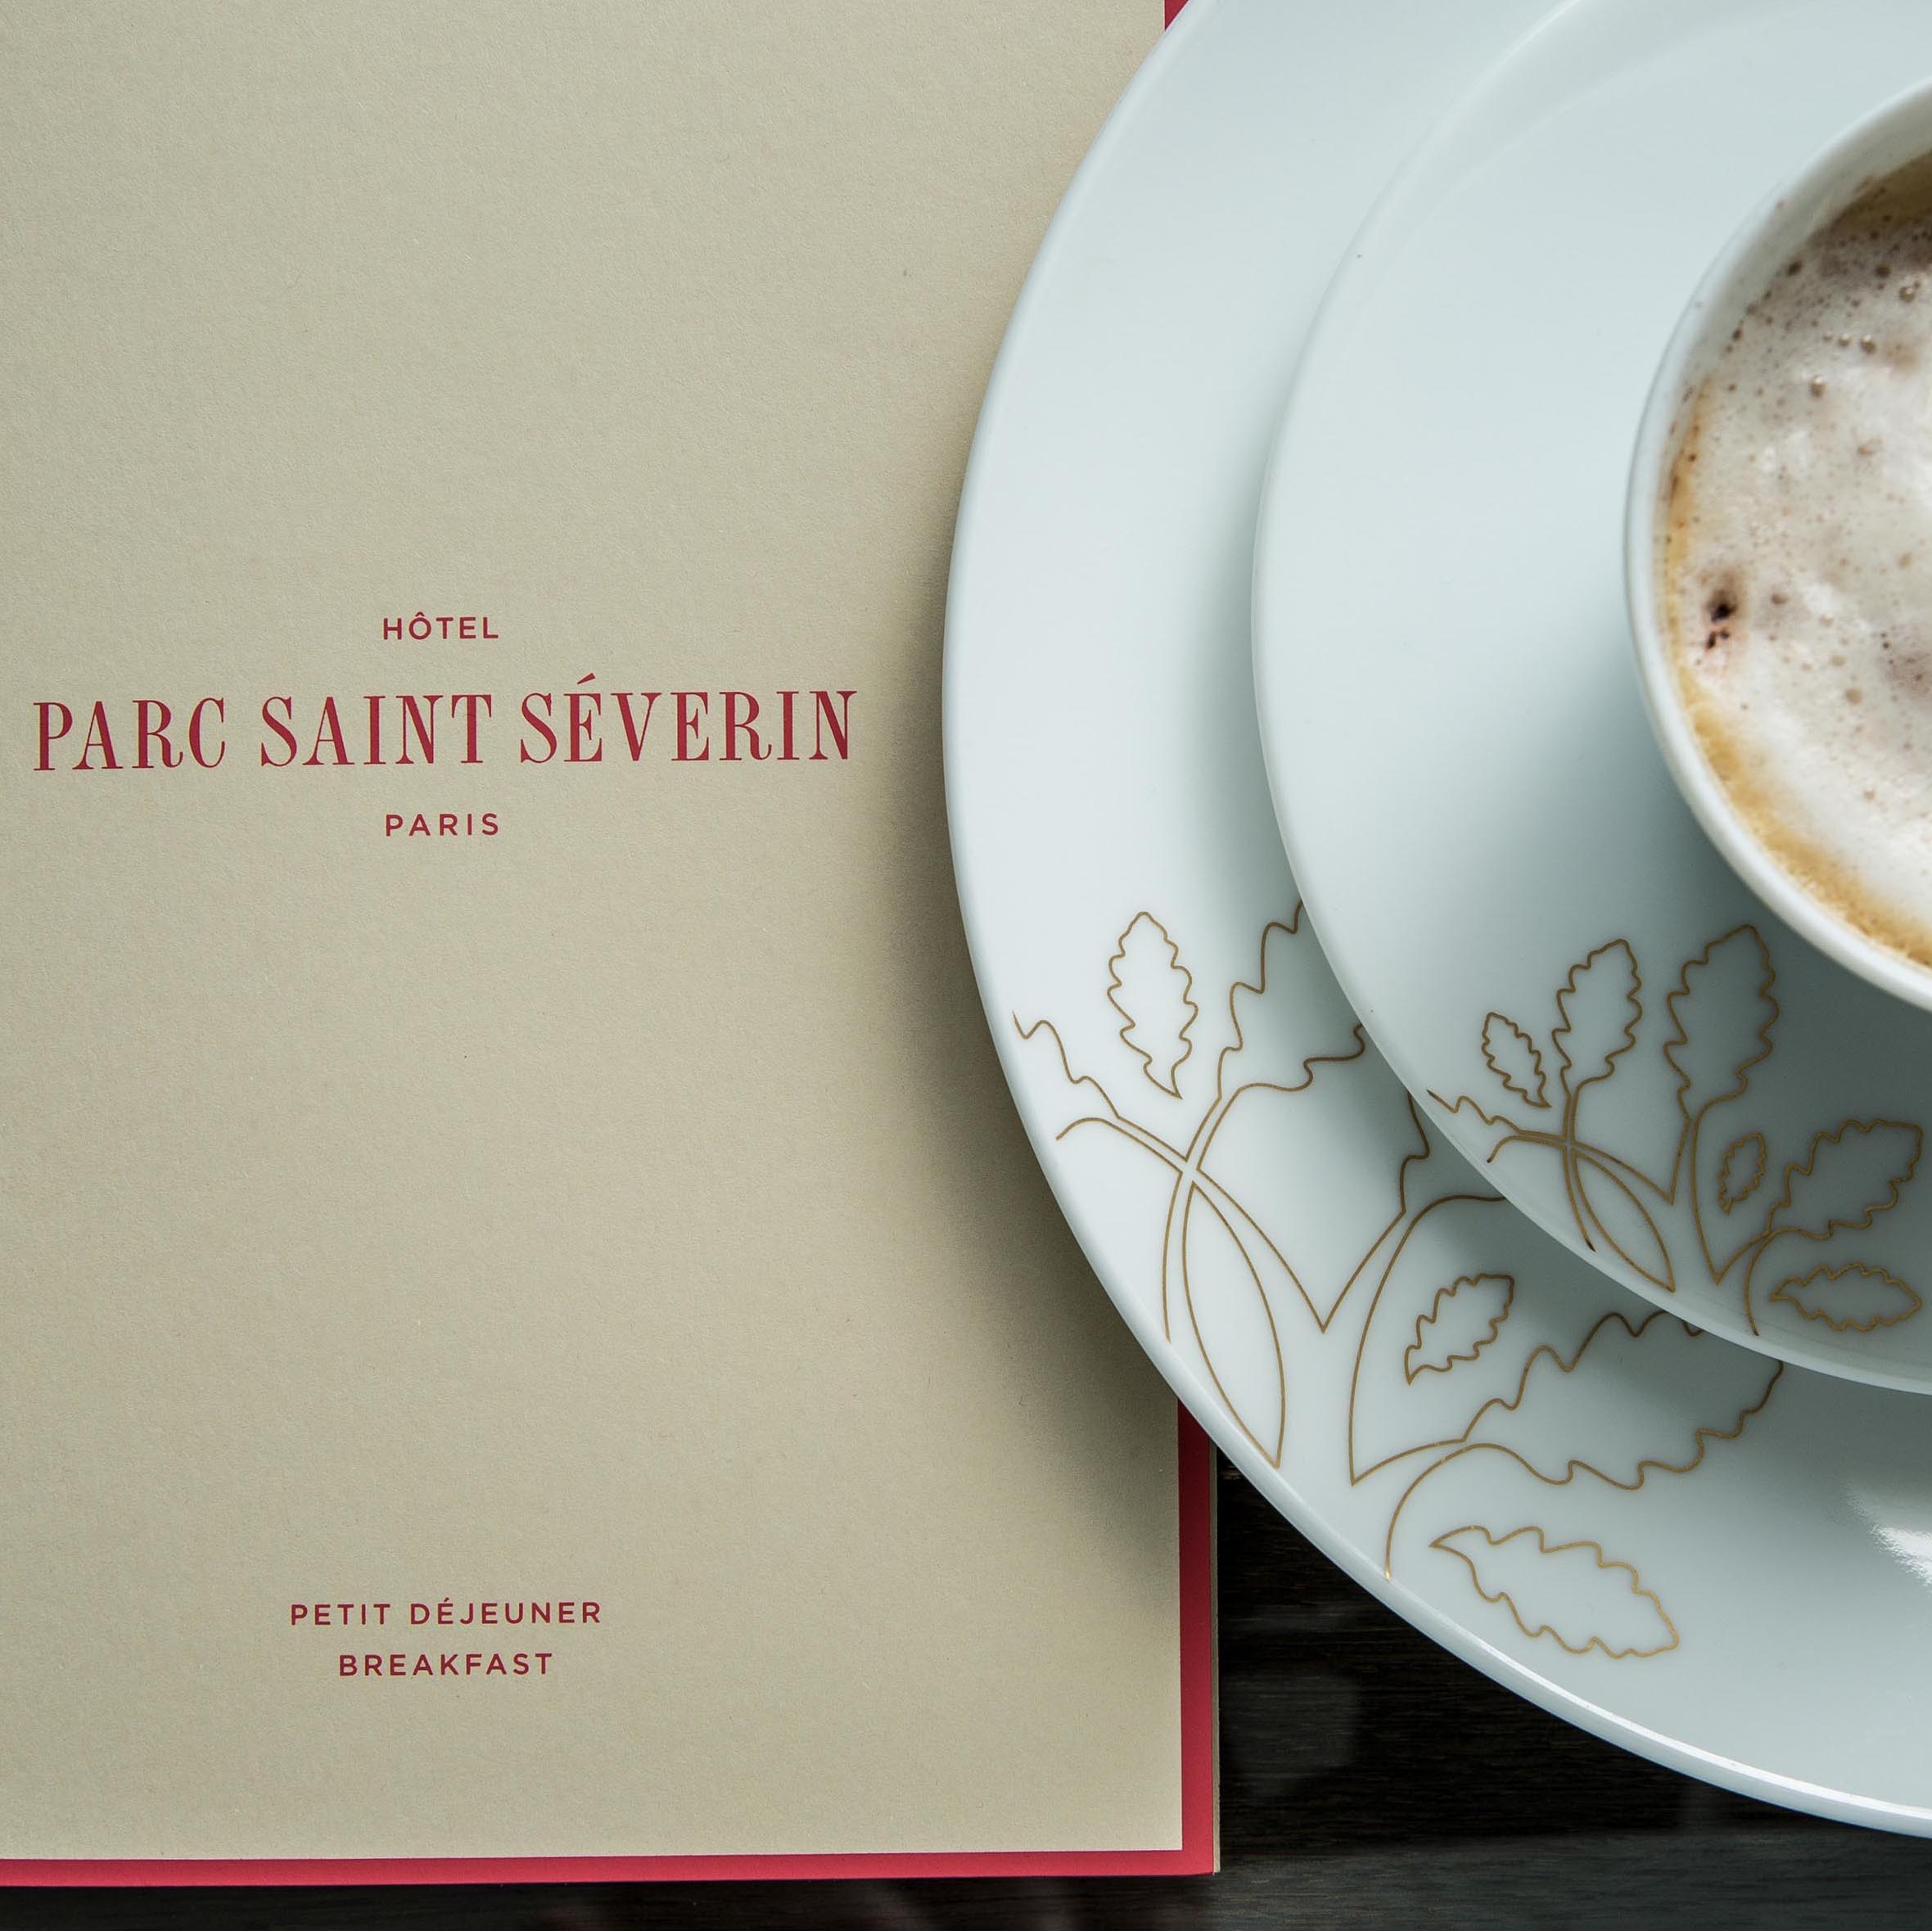 Breakfast at the Hotel Parc Saint Séverin in Paris